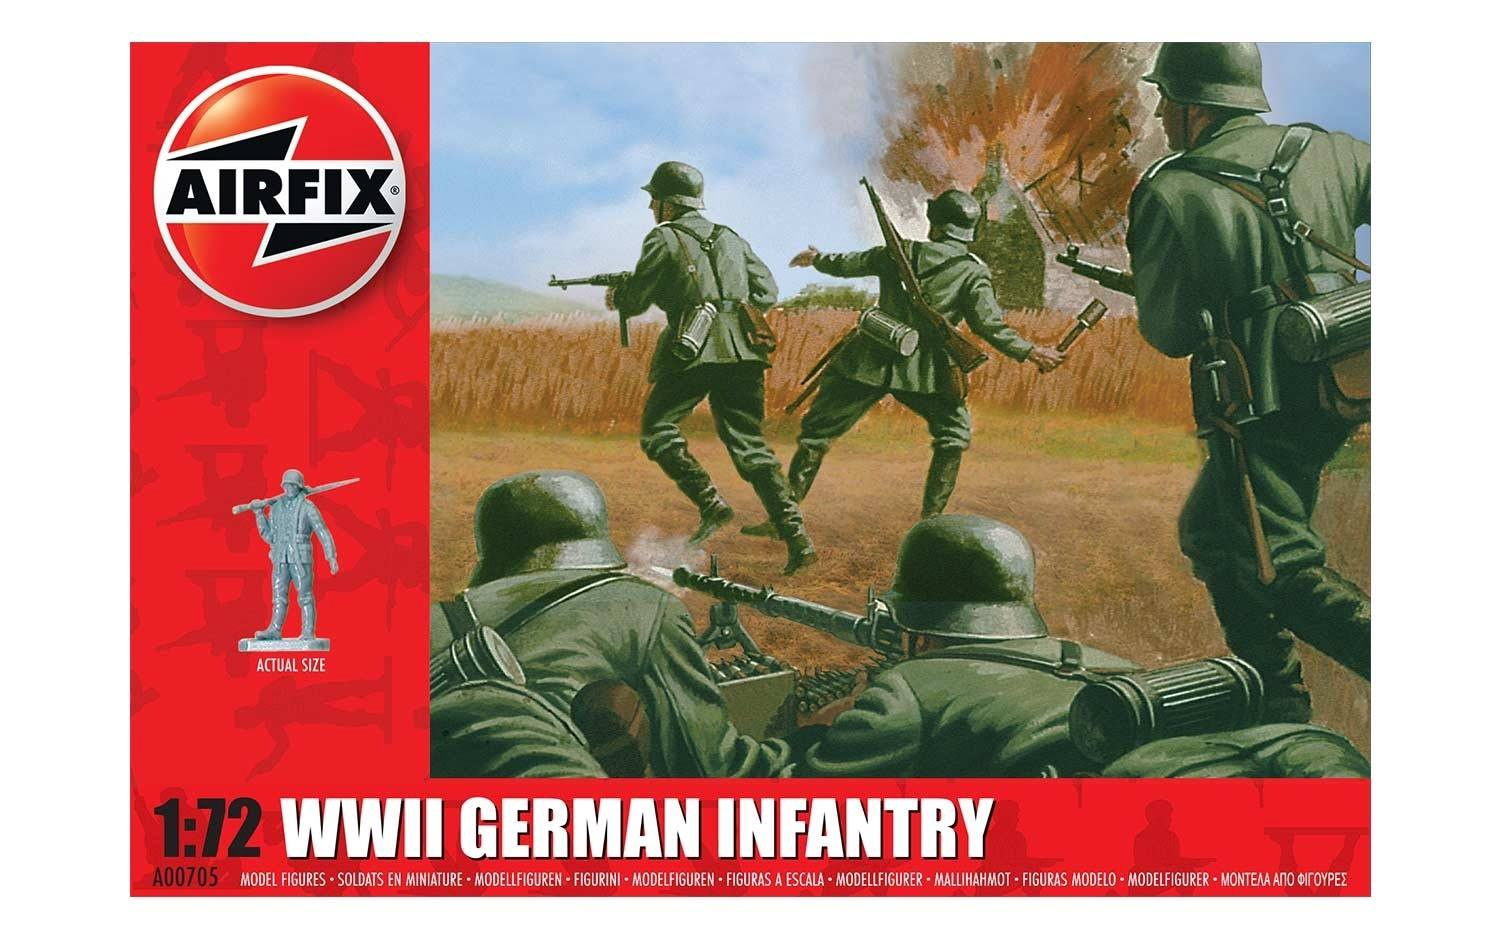 Airfix #A00705 1/72 WWII German Infantry